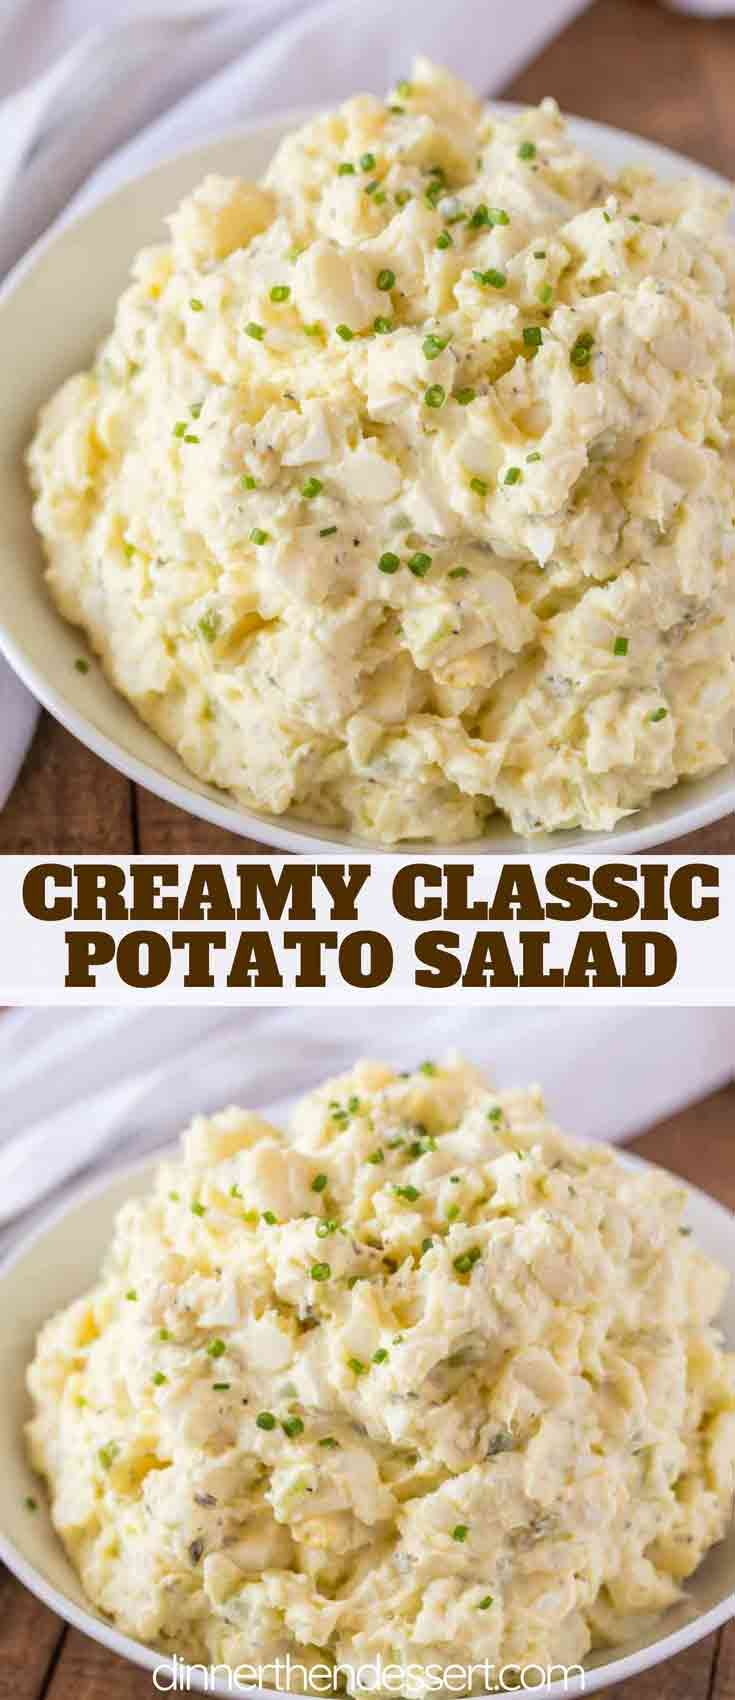 Classic Potato Salad with a creamy mayonnaise dressing with relish, mustard and celery salt coating potatoes and chopped hard boiled eggs. | #potatosalad #summer #sidedish #vegetarian #dinnerthendessert #bbq #picnic